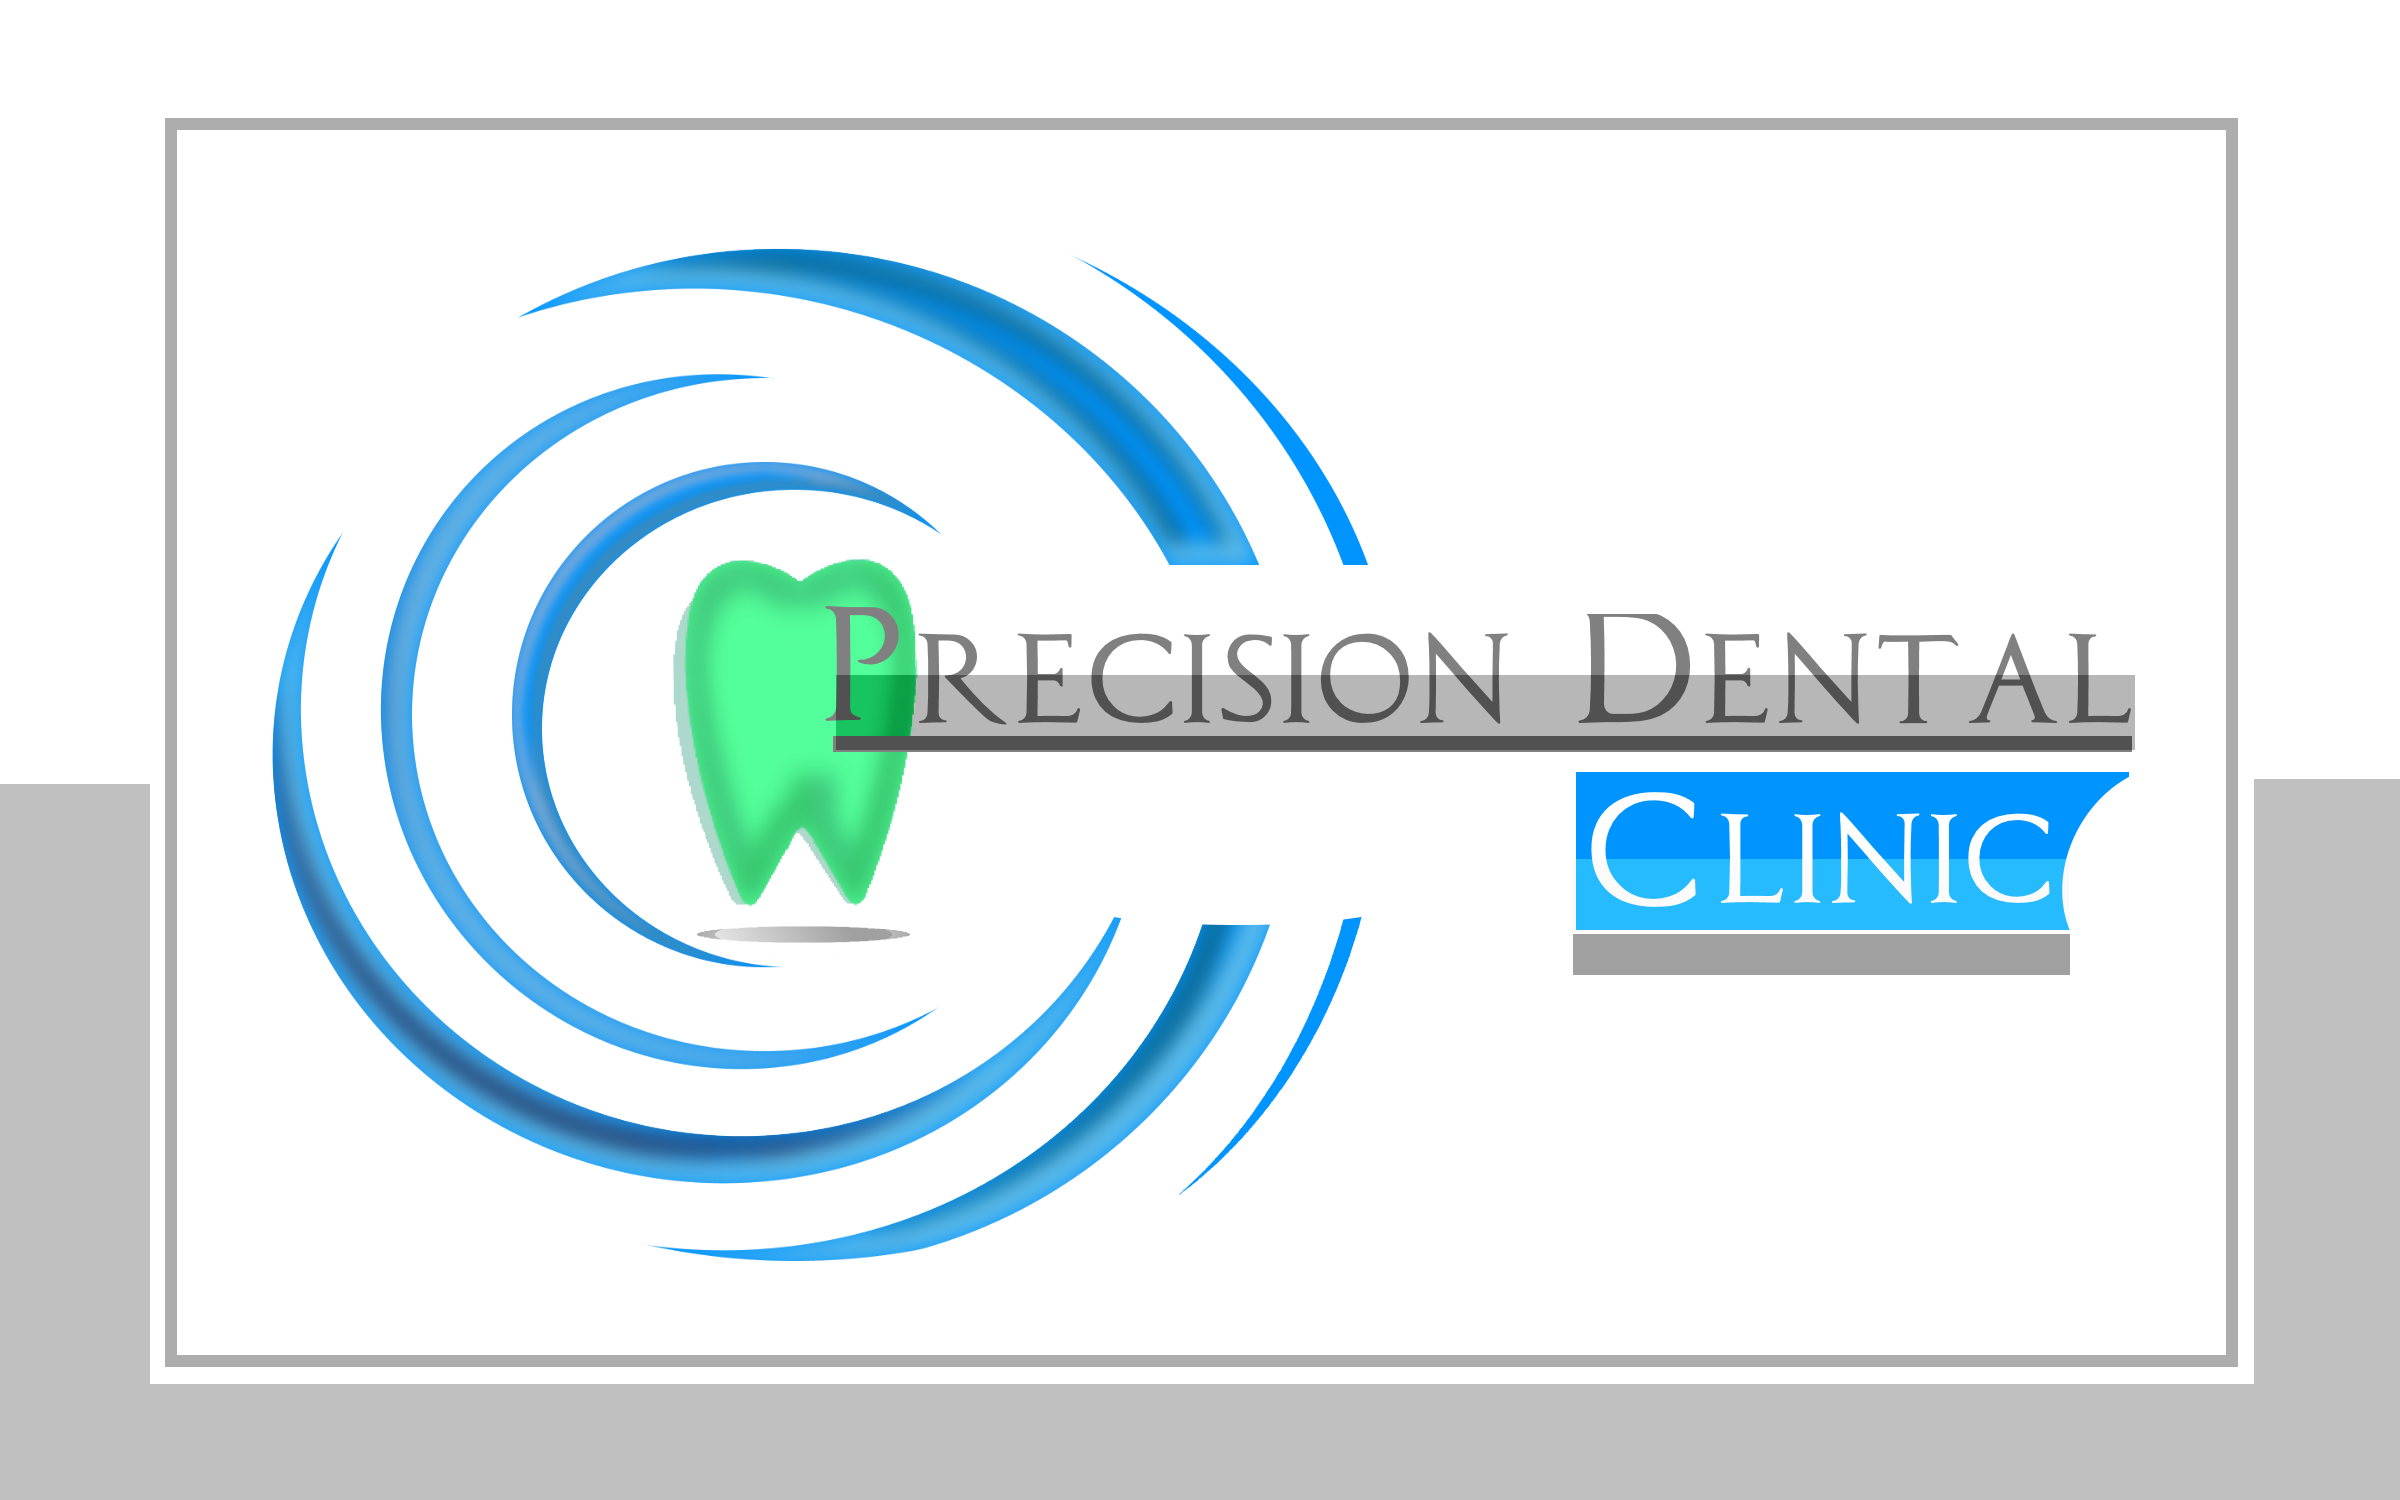 Logo Design by Roberto Bassi - Entry No. 34 in the Logo Design Contest Captivating Logo Design for Precision Dental Clinic.